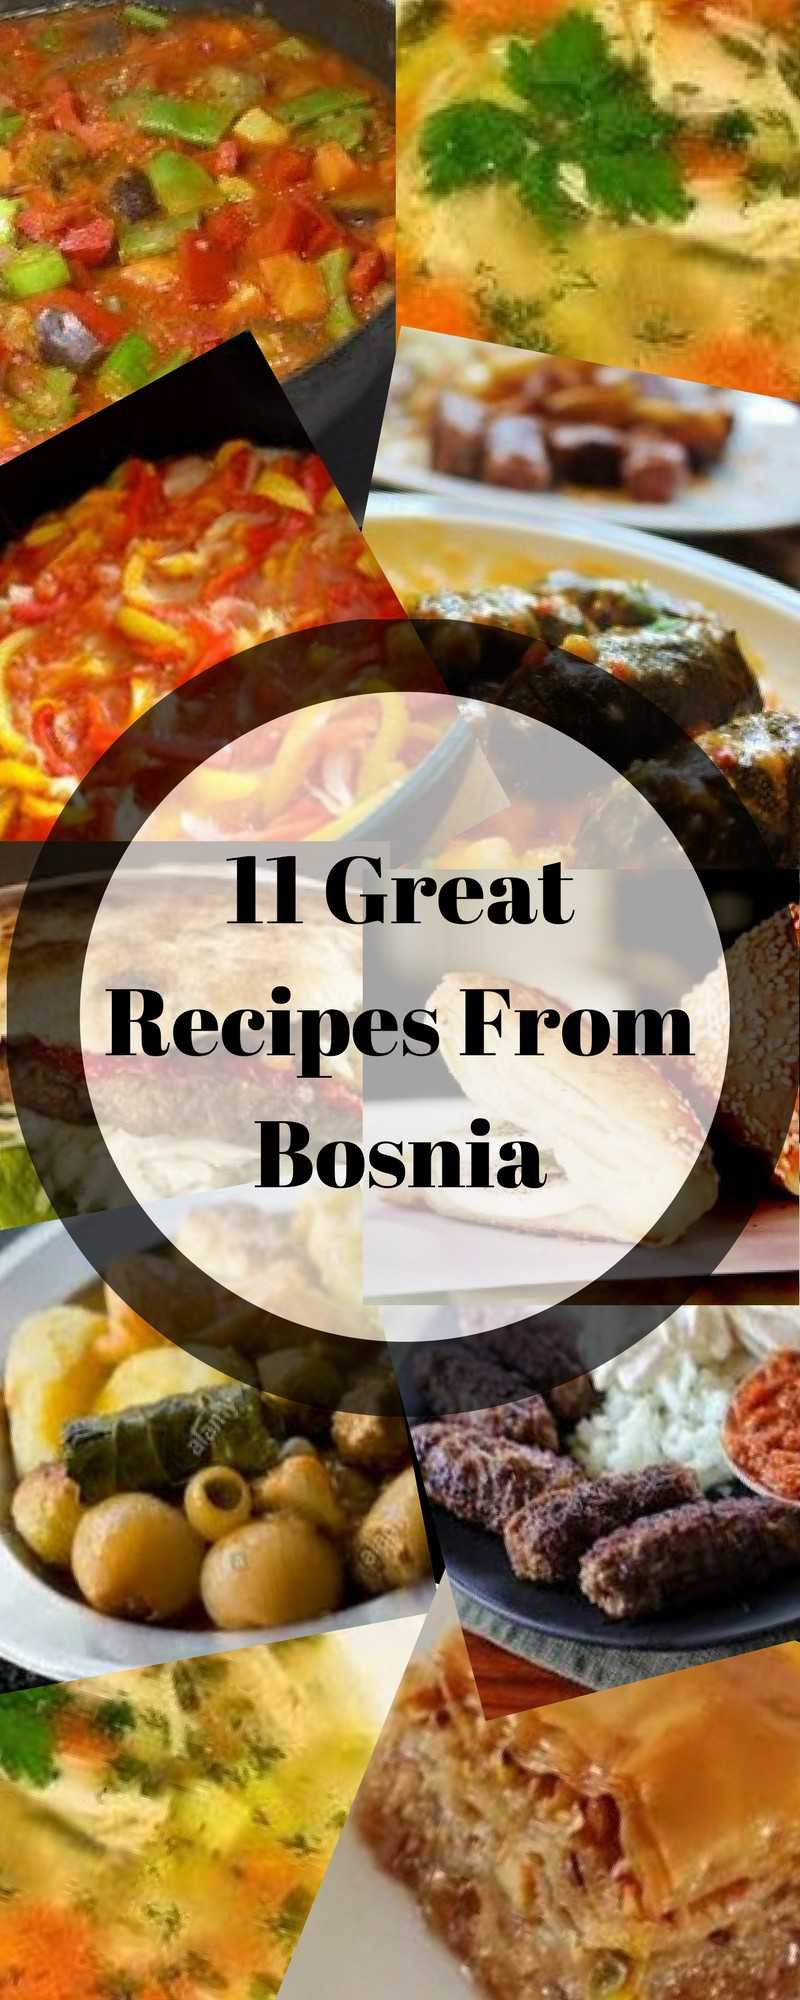 11 Great Recipes From Bosnia - Bosnian Food Is It Keto Friendly | Keto | Recipes | Weight Loss Food | Weight Loss Recipes | Healthy Meals | Weight Loss Snack Recipes | Weight Loss Dinner Recipes | Weight Loss Dessert Recipes | Weight Loss Low Carb Recipes | Weight Loss Lunch Recipes | Weight Loss Breakfast Recipes | ARoadtoTravel.com